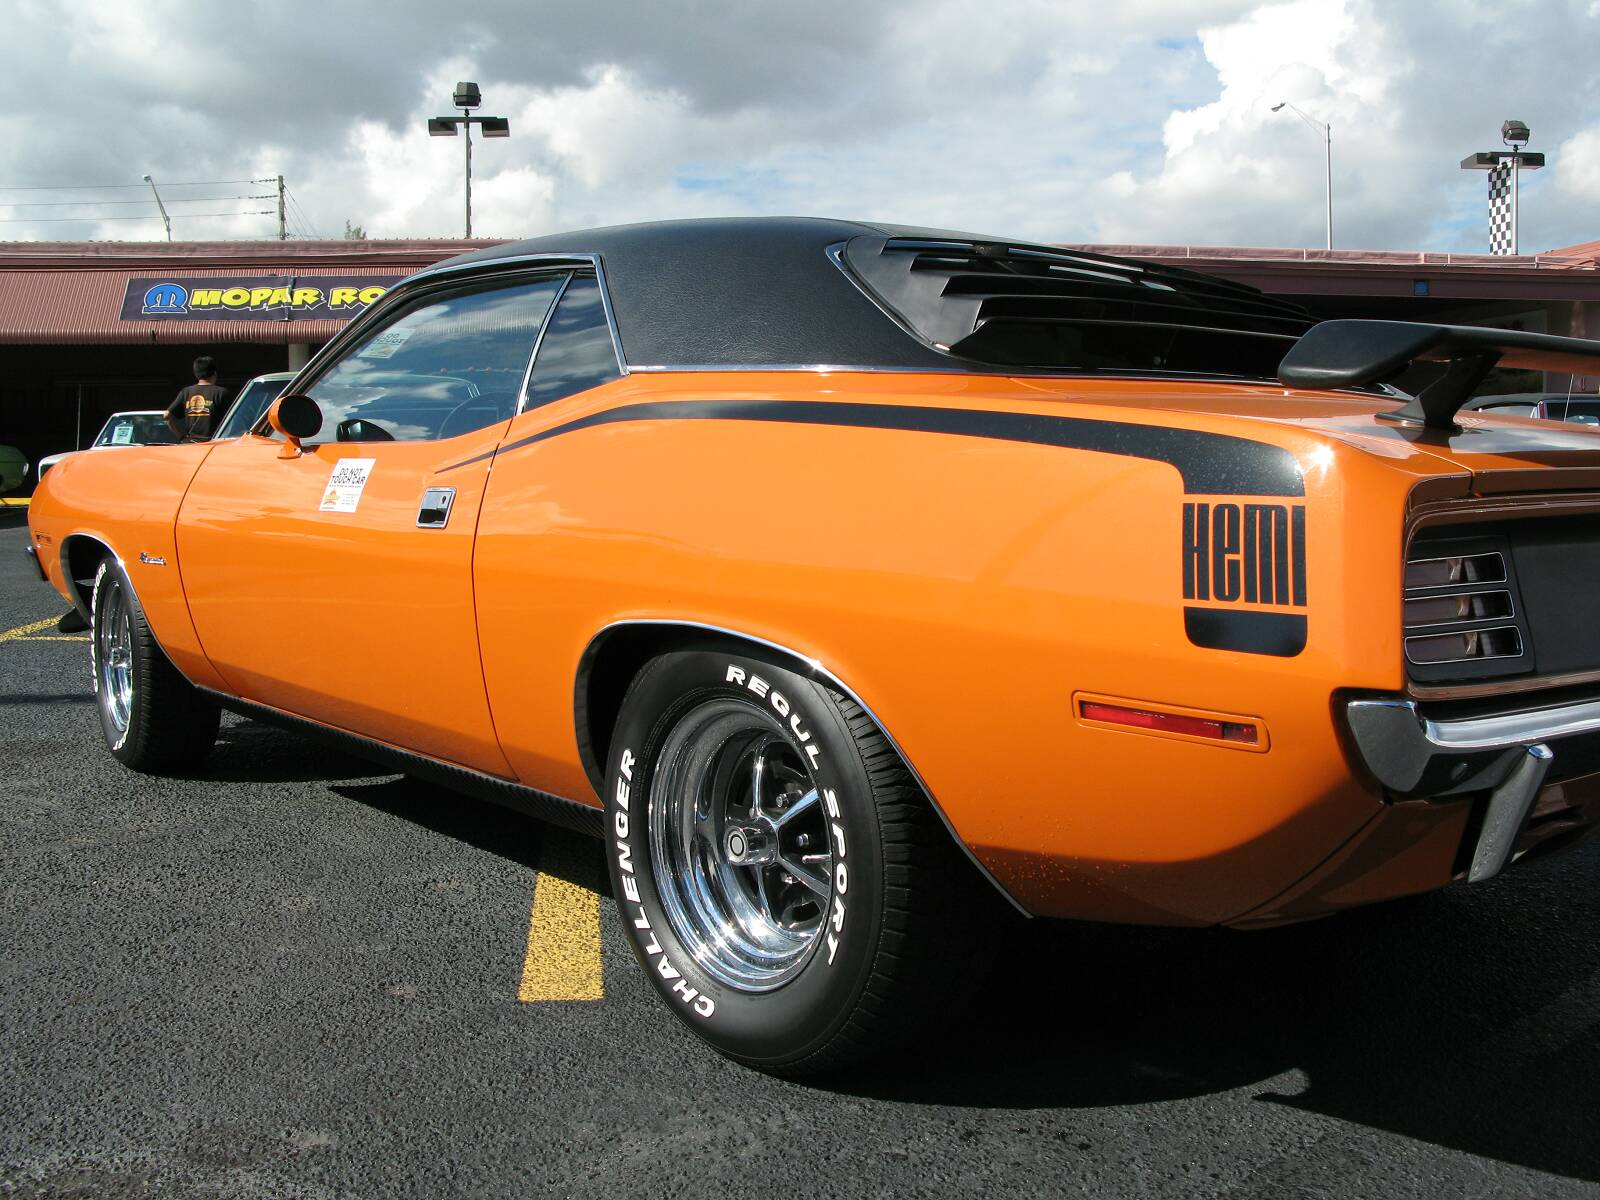 Plymouth Hemi Cuda on Muscle Cars With Hemi Engines